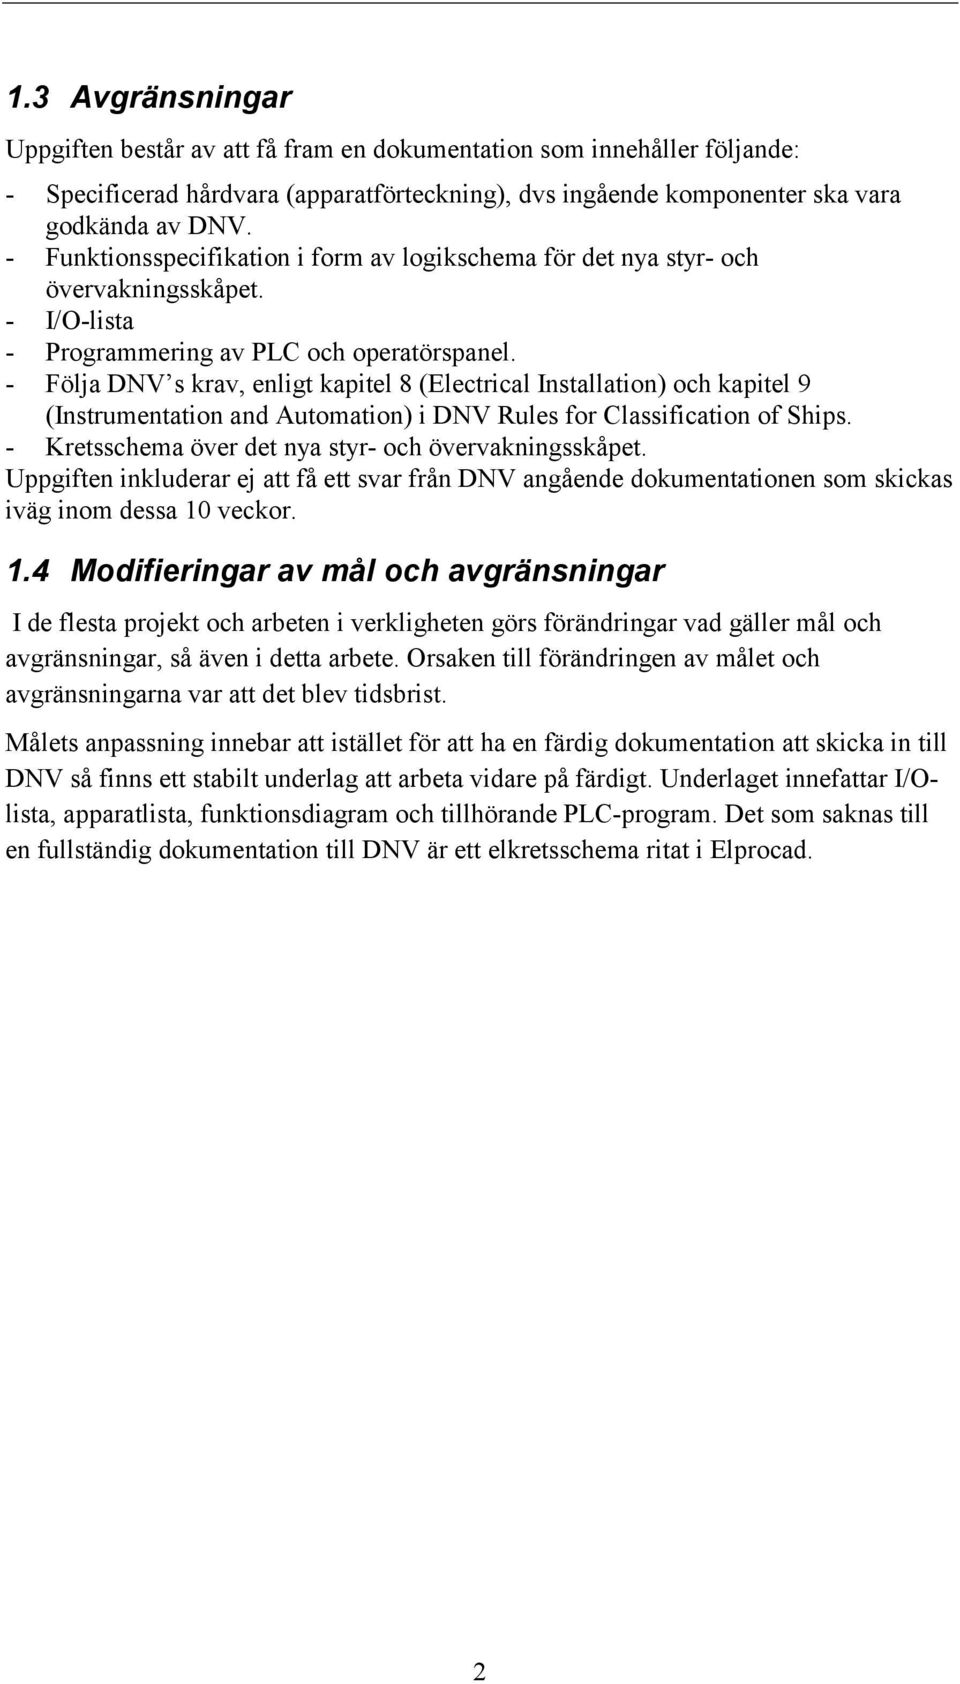 - Följa DNV s krav, enligt kapitel 8 (Electrical Installation) och kapitel 9 (Instrumentation and Automation) i DNV Rules for Classification of Ships.